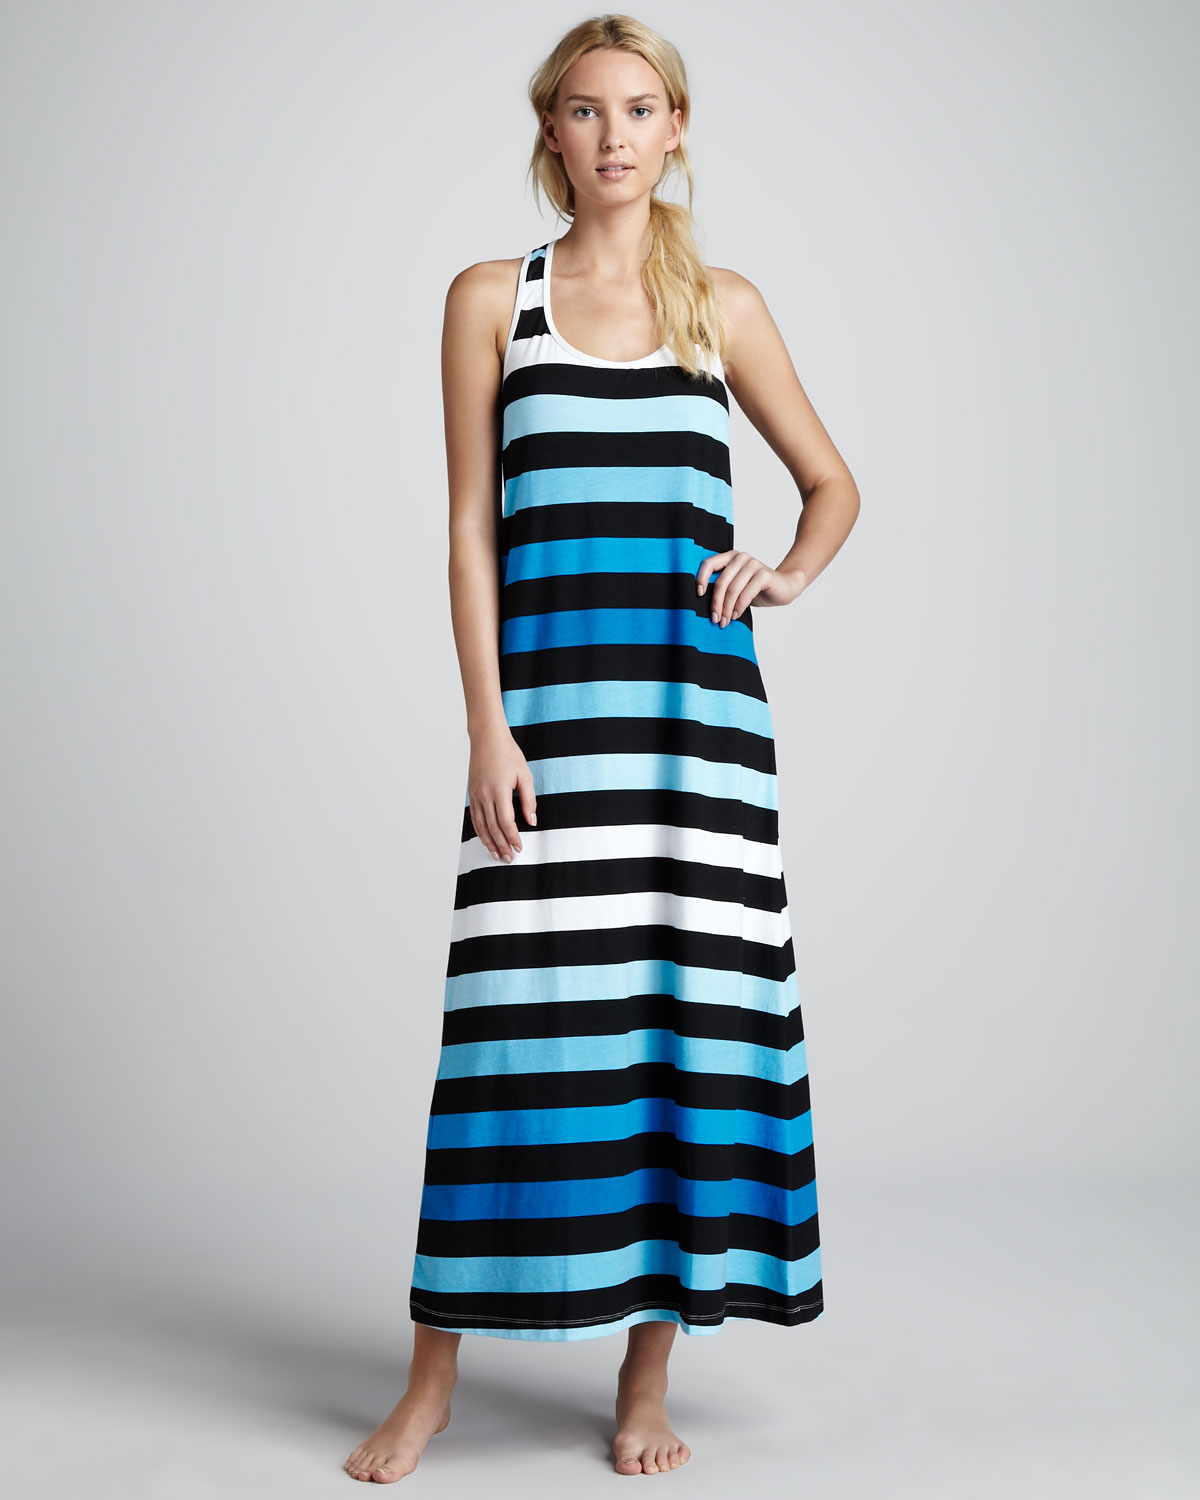 Tommy bahama Bermuda Striped Maxi Dress in Blue - Lyst